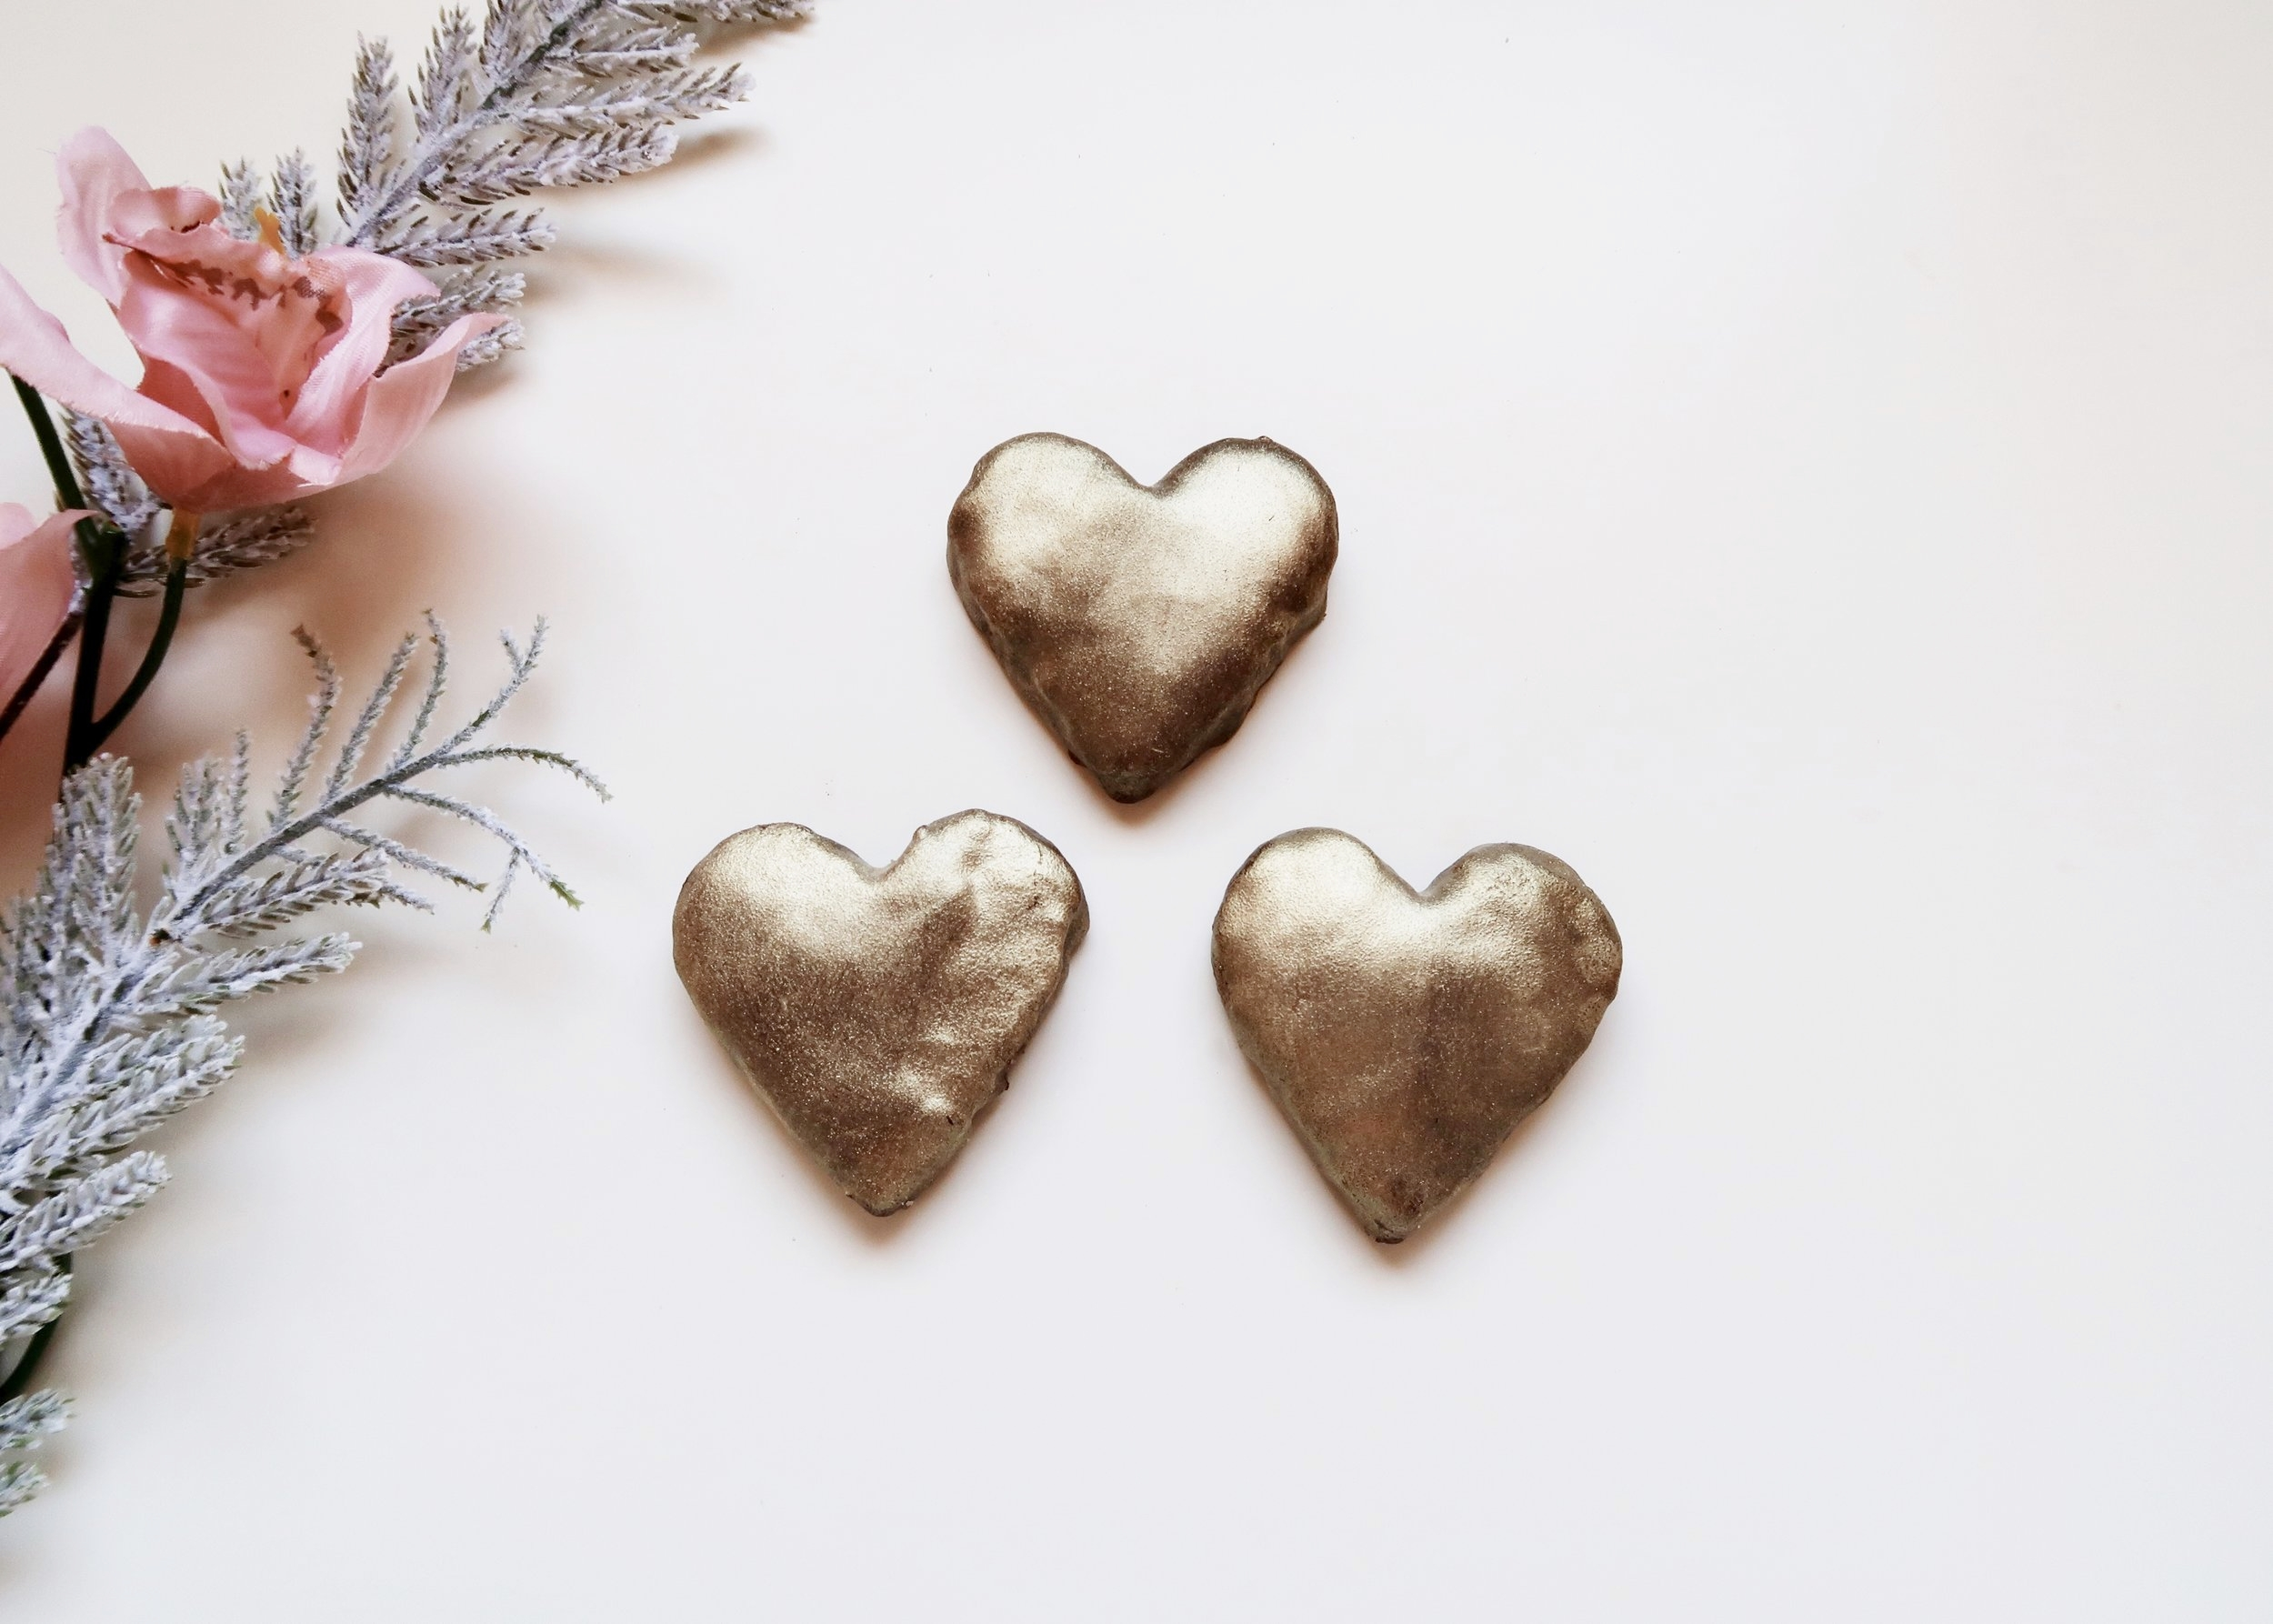 DIY Gold Heart Chocolate Cookies by Isoscella